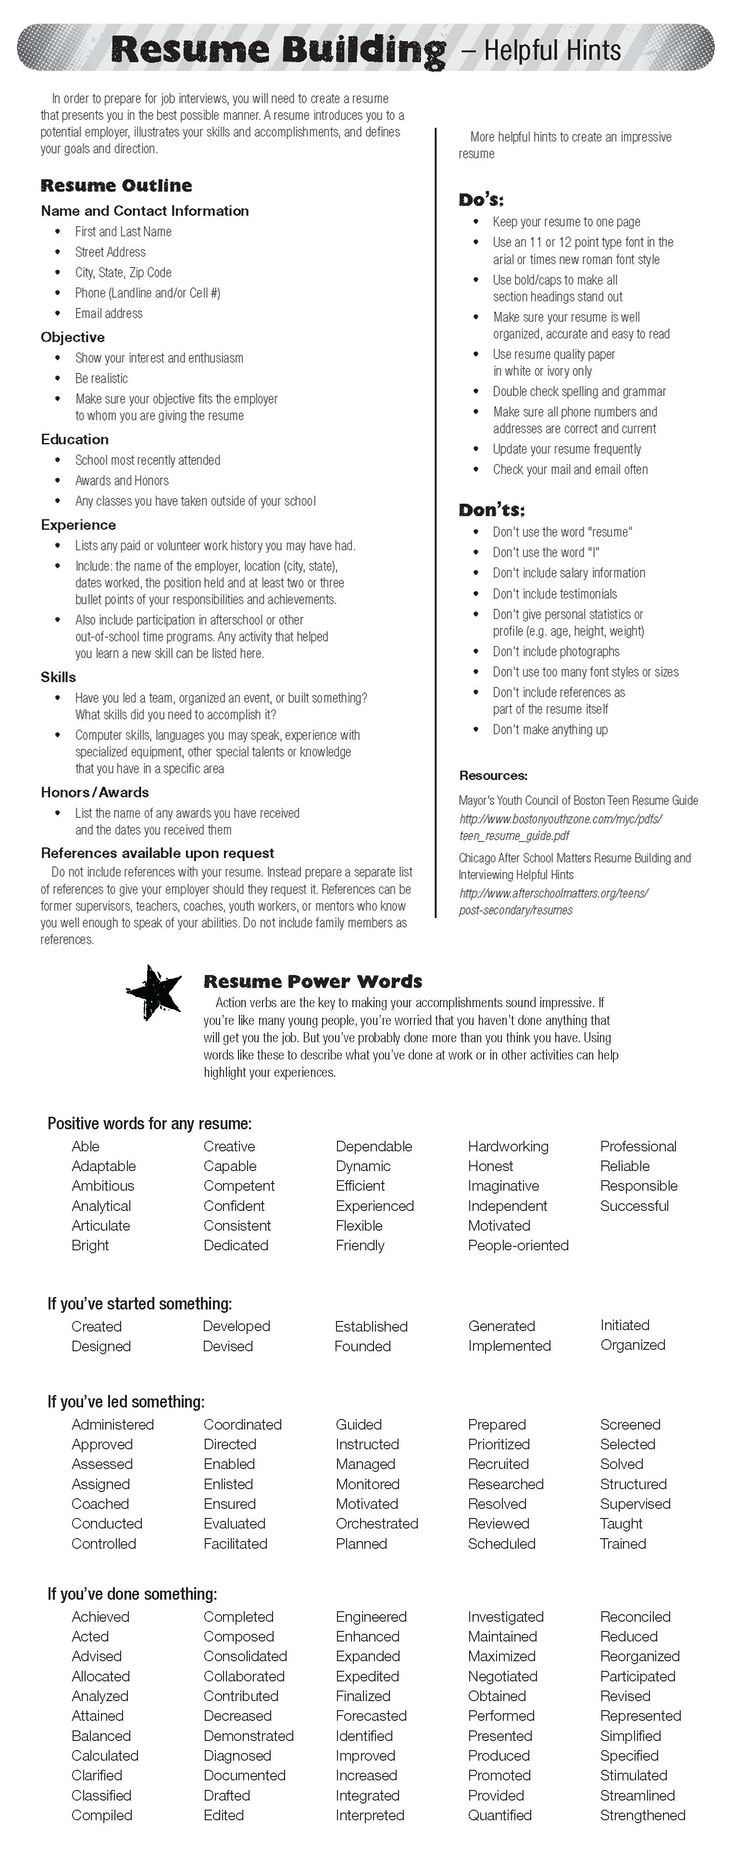 Opposenewapstandardsus  Wonderful  Ideas About Resume On Pinterest  Cv Format Resume Cv And  With Entrancing  Ideas About Resume On Pinterest  Cv Format Resume Cv And Resume Templates With Extraordinary Skills Resume Samples Also Job Resume Definition In Addition Resume Binder And Server Responsibilities Resume As Well As Usajobs Resume Format Additionally Administration Resume From Pinterestcom With Opposenewapstandardsus  Entrancing  Ideas About Resume On Pinterest  Cv Format Resume Cv And  With Extraordinary  Ideas About Resume On Pinterest  Cv Format Resume Cv And Resume Templates And Wonderful Skills Resume Samples Also Job Resume Definition In Addition Resume Binder From Pinterestcom